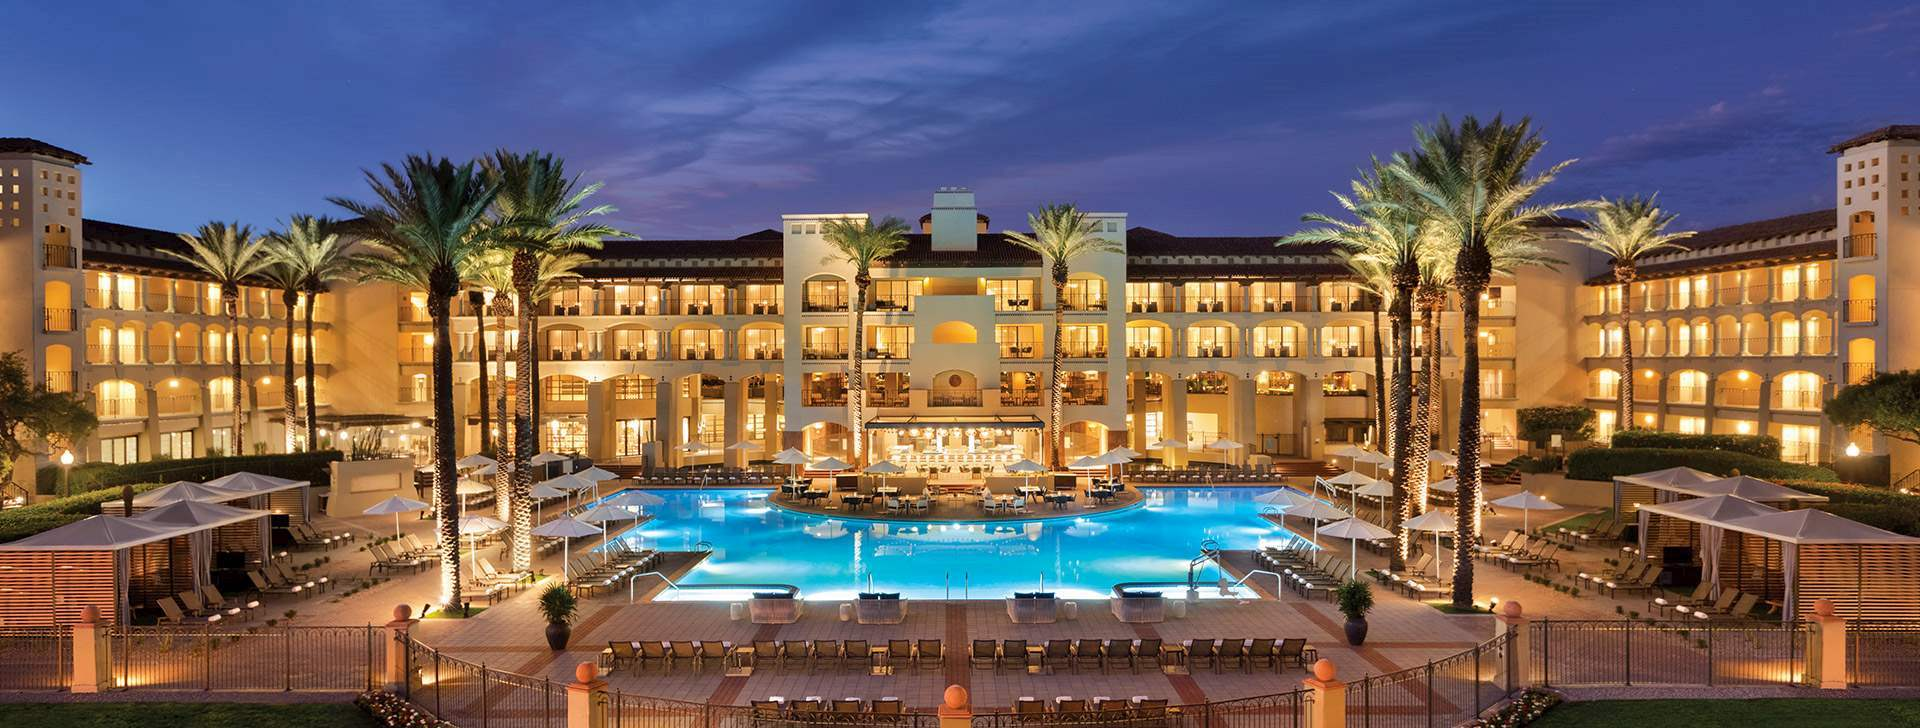 Fairmont Scottsdale Princess, Arizona